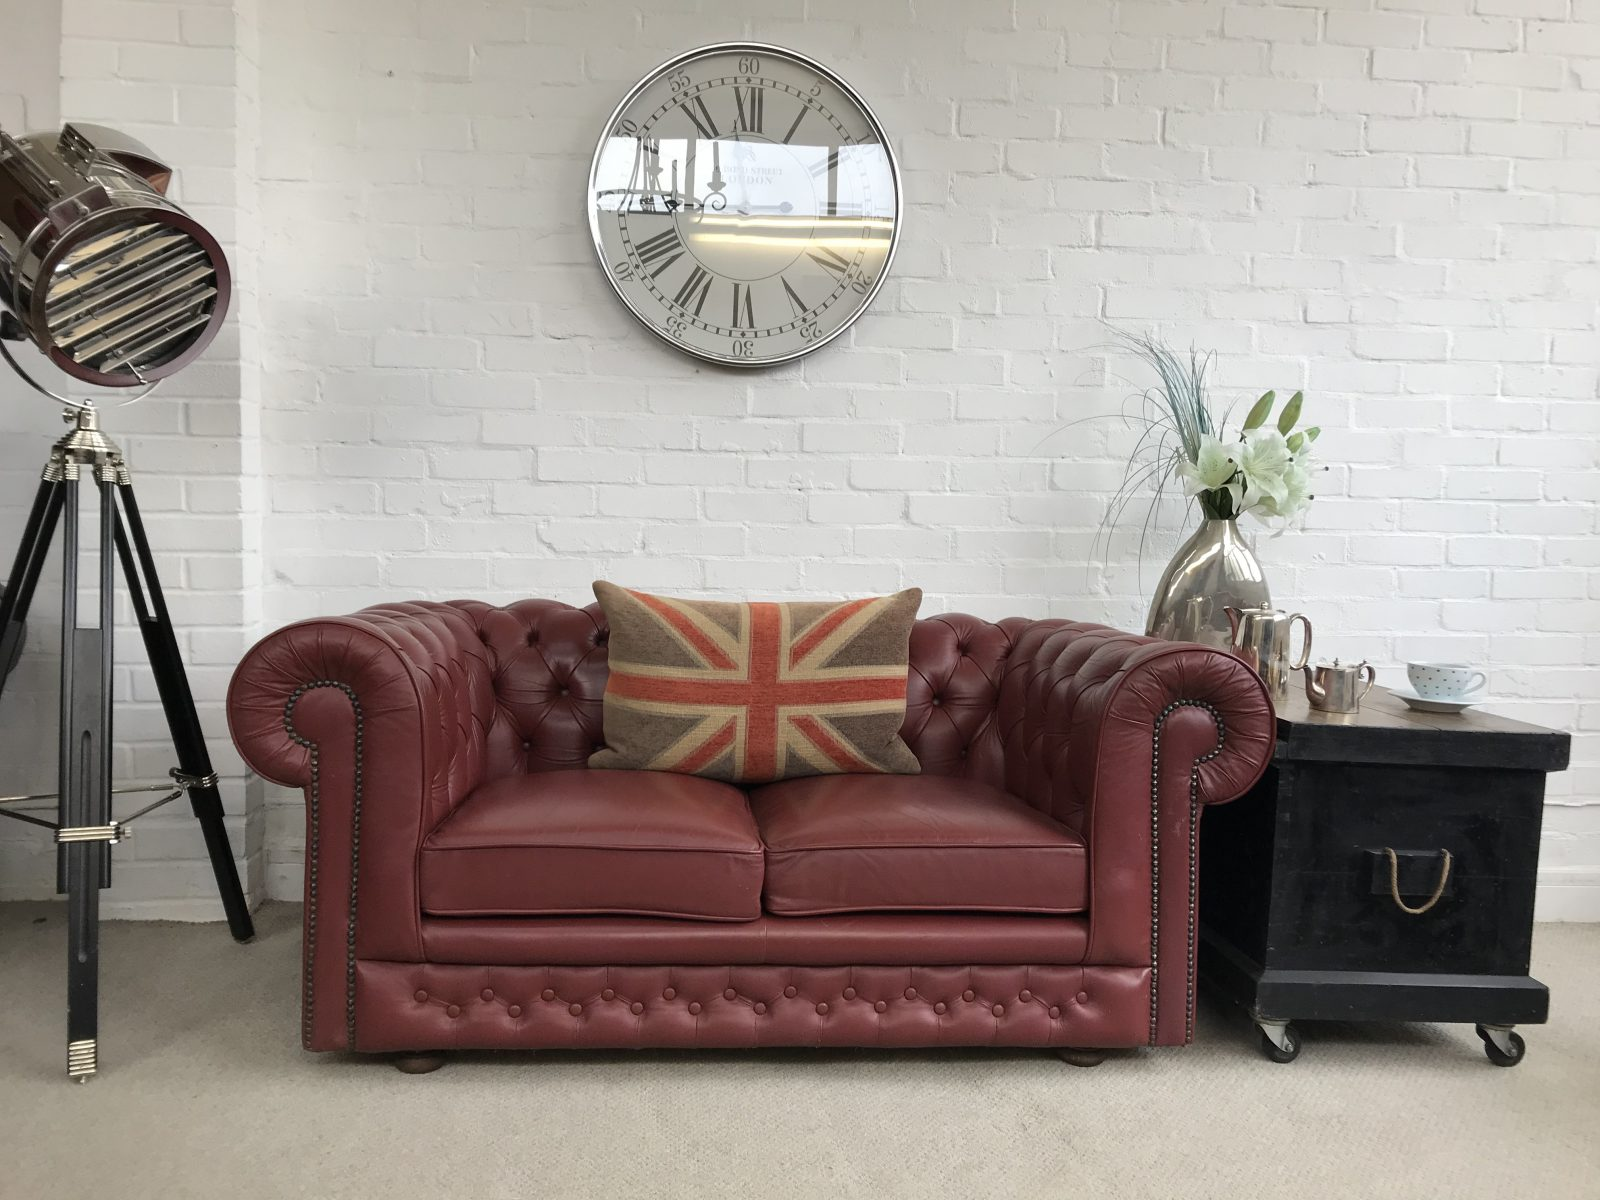 Vintage Chesterfield Sofa.(Matching 3 Seater Available)